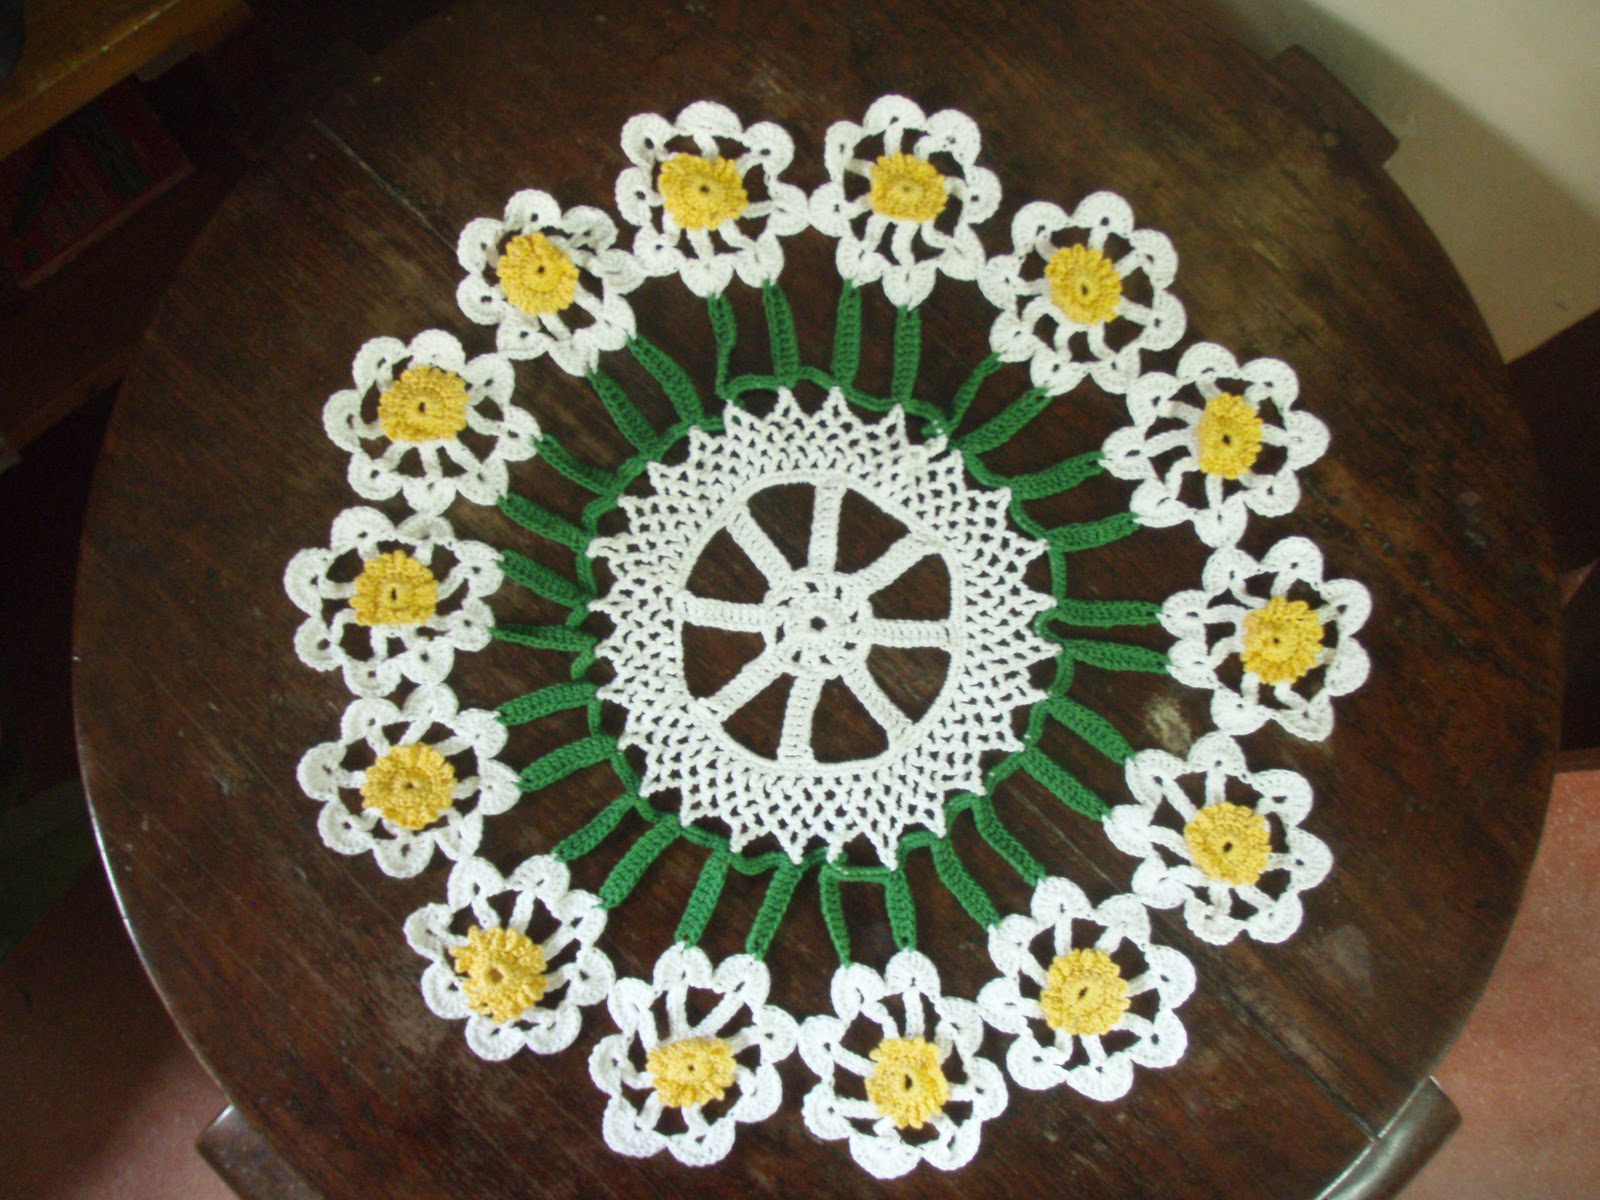 Treasured Heirlooms Crochet Vintage Pattern Shop: Doilies, page 4